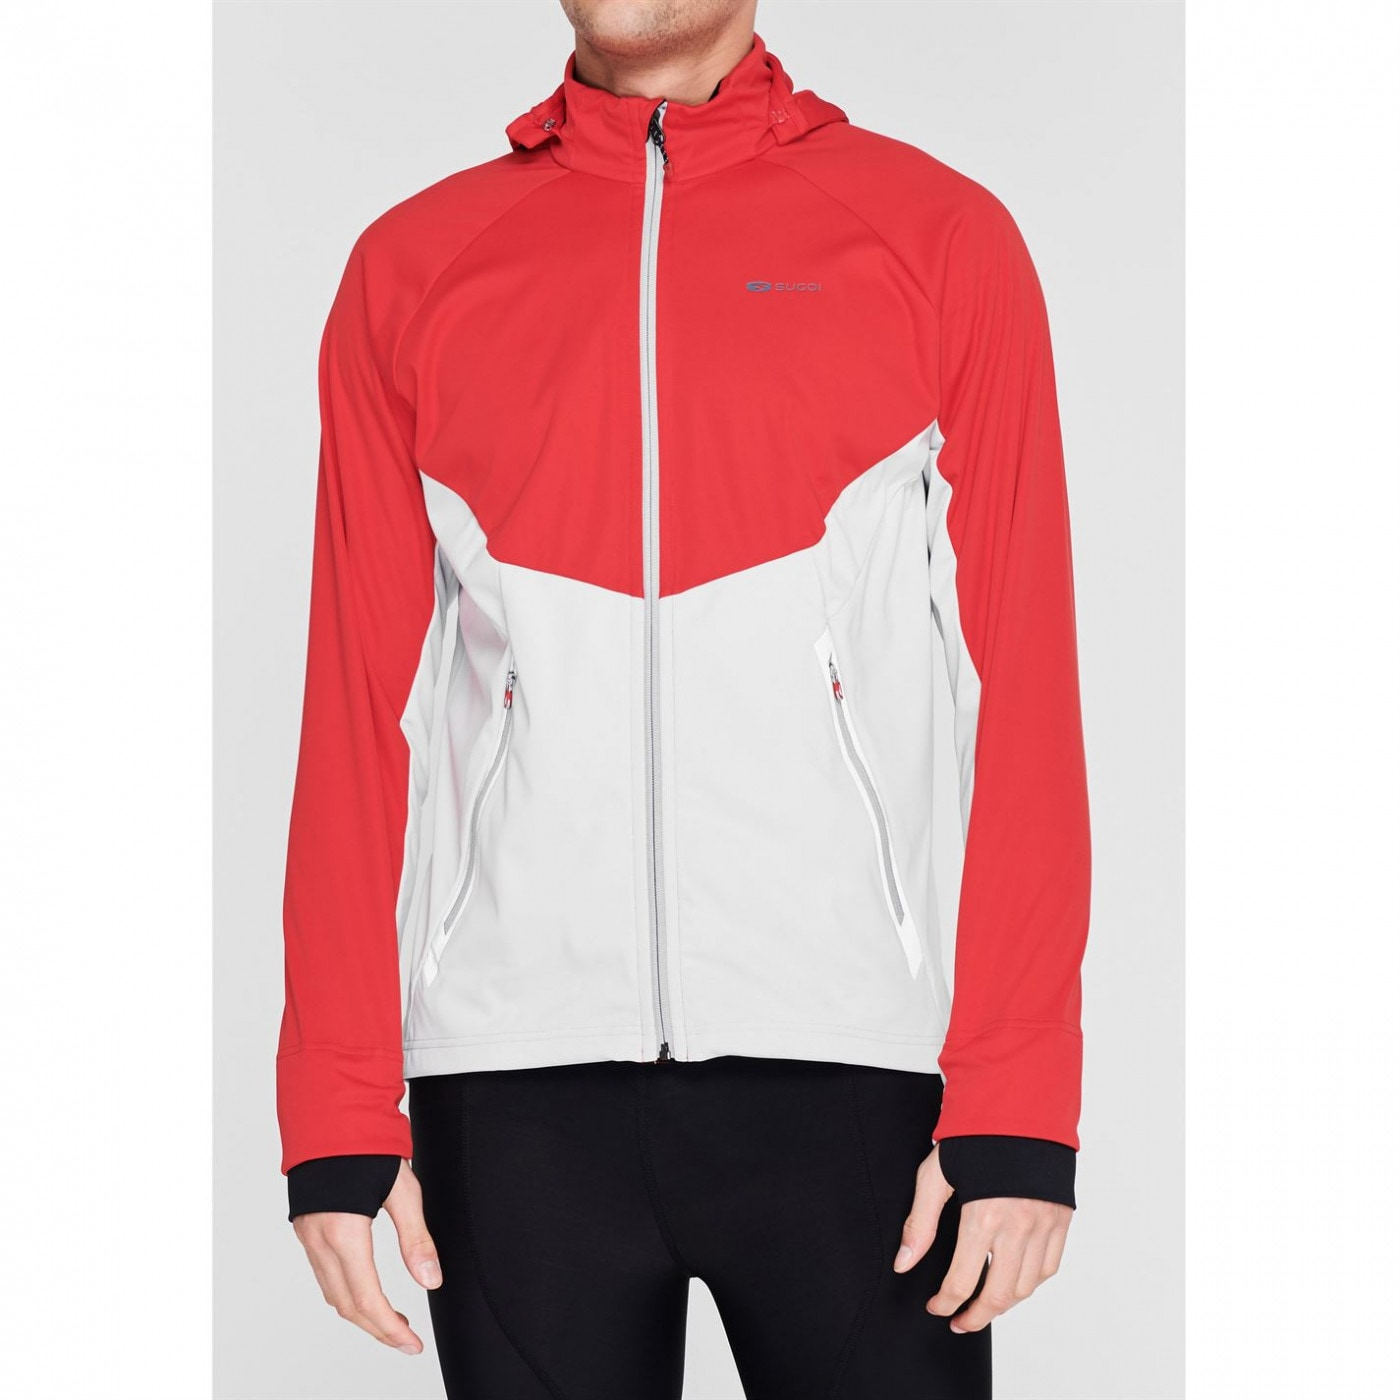 Sugoi Firewall 180 Cycling Jacket Mens